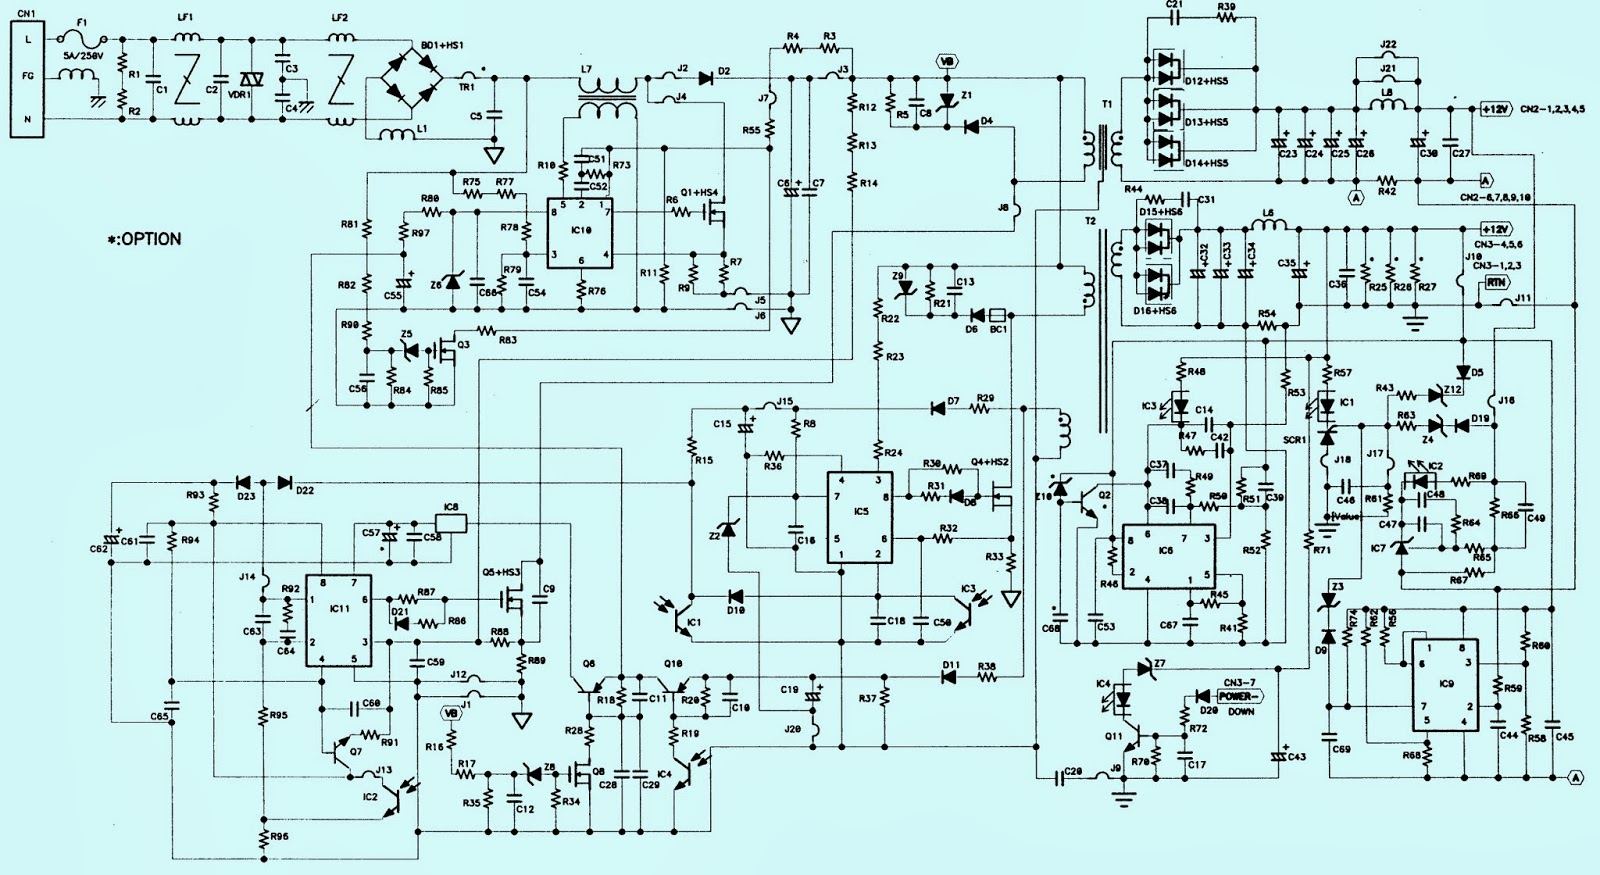 untitled.bmp toshiba 27wl46 power supply [smps] schematic (circuit diagram toshiba motor wiring diagram at creativeand.co